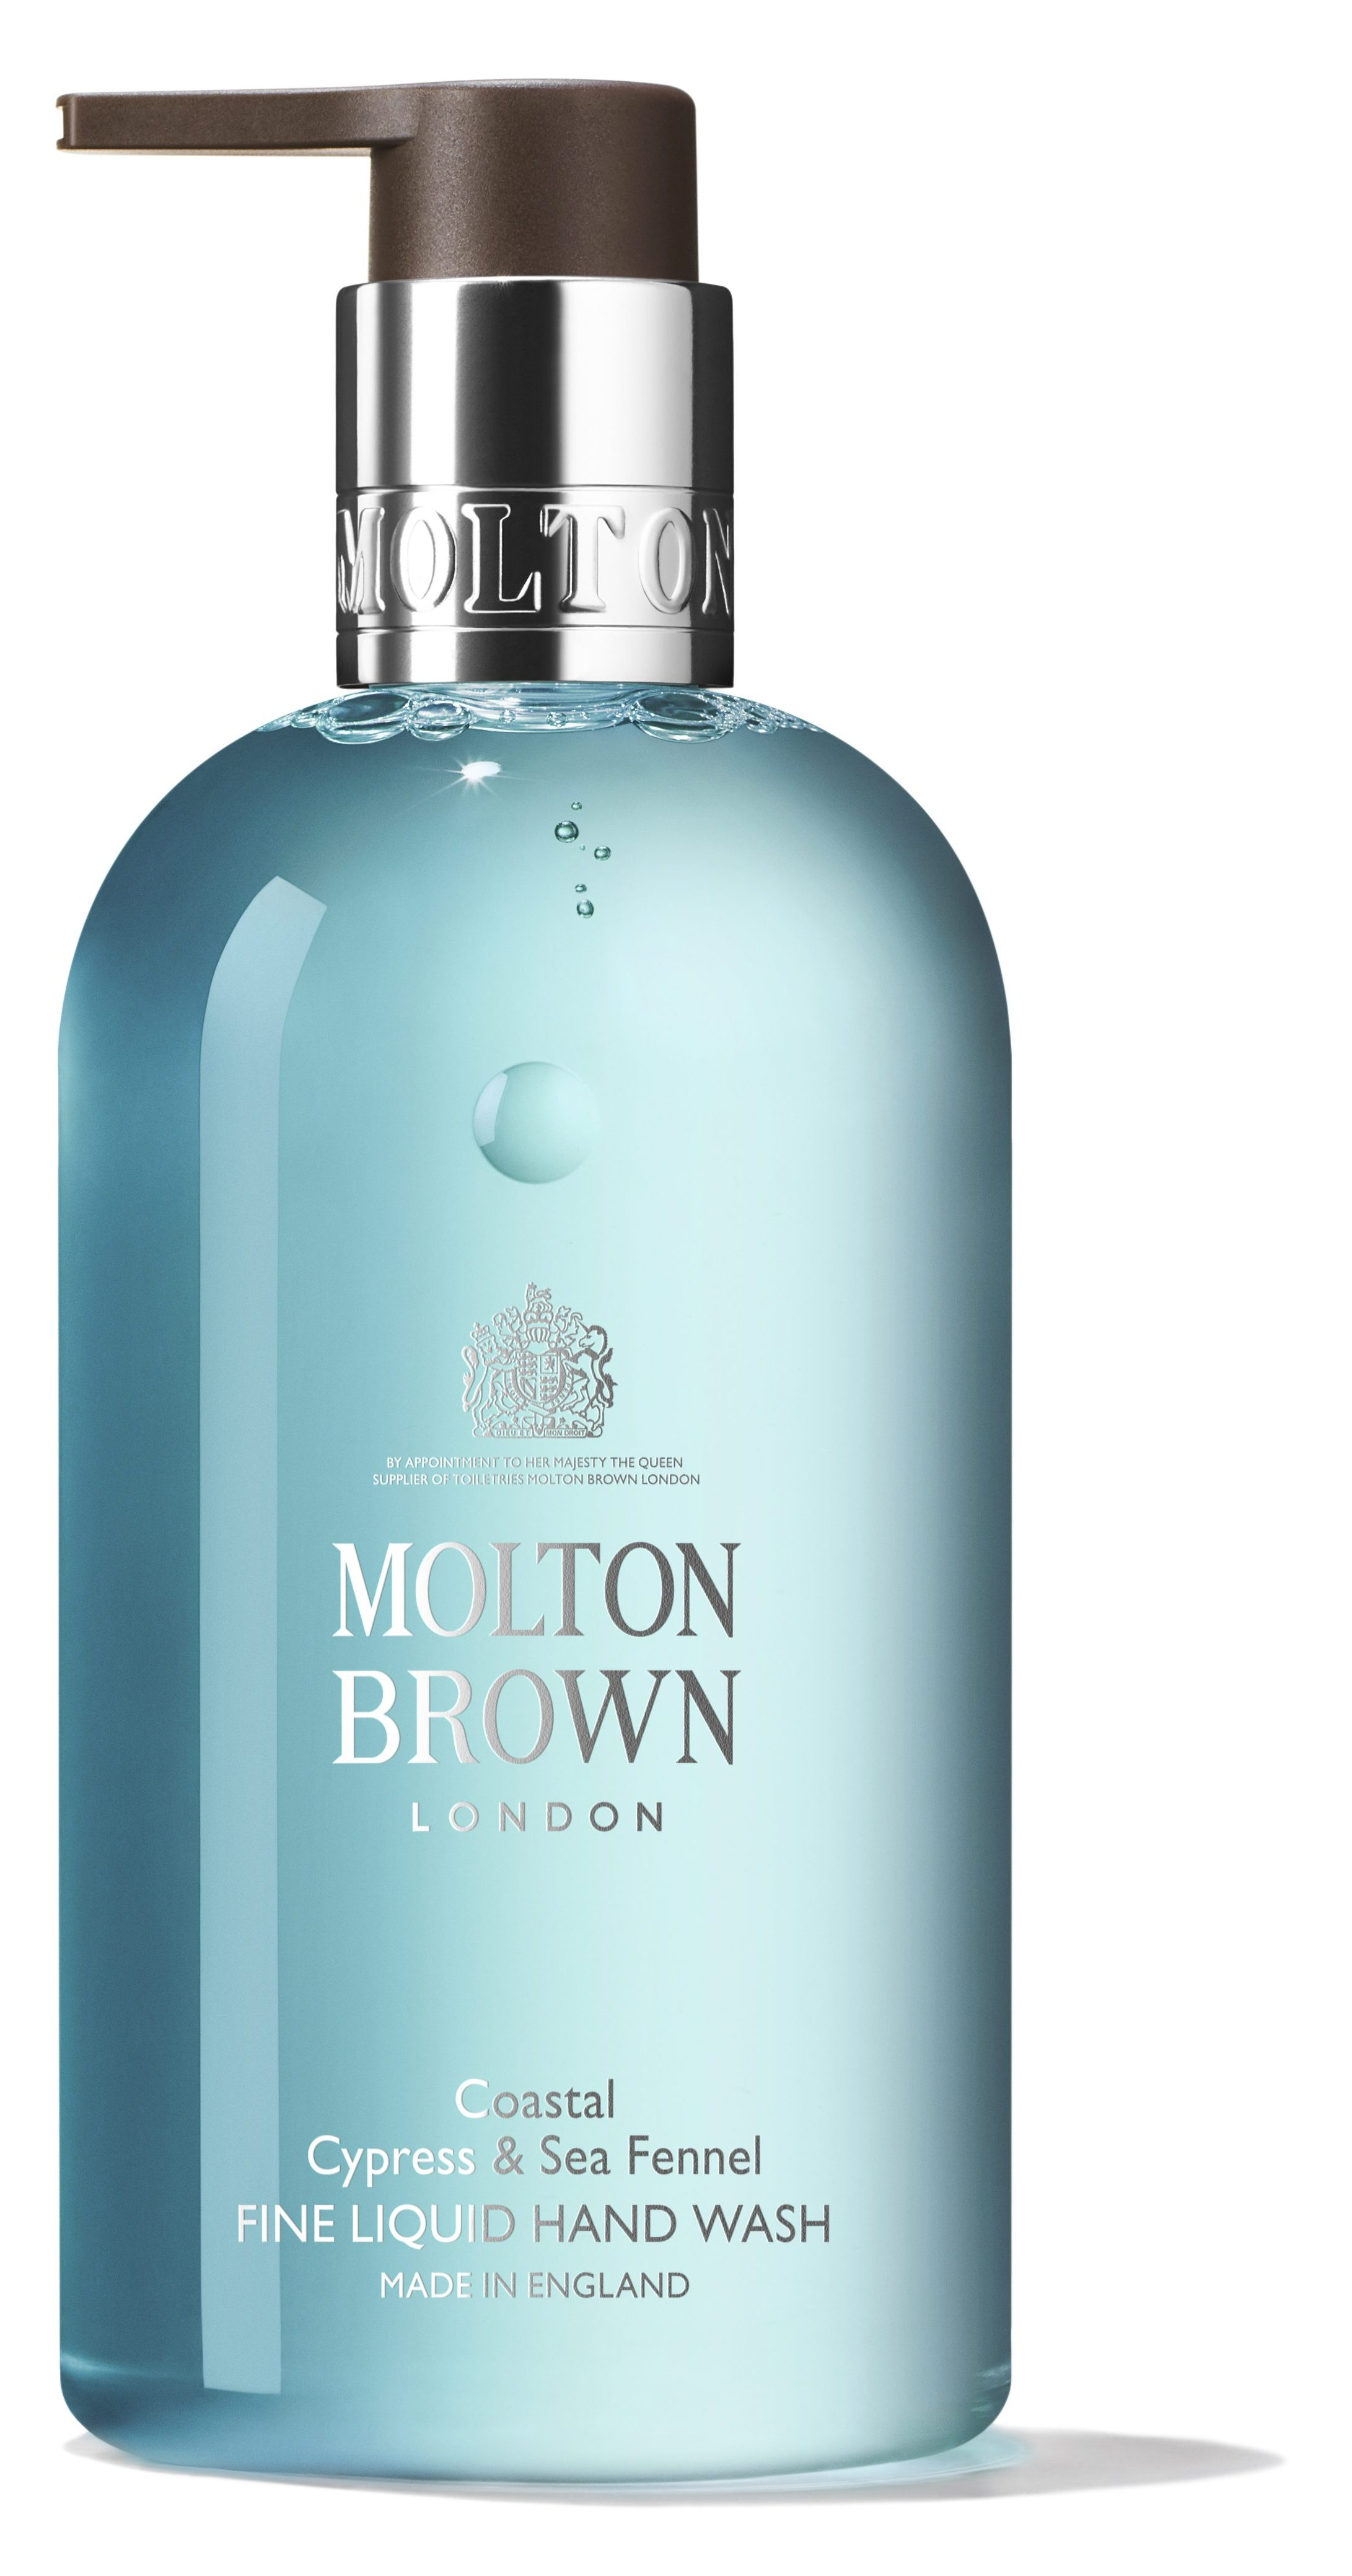 håndsæbe Molton-Brown-Coastal-Cypress-Sea-Fennel-Hand-Wash-300ml